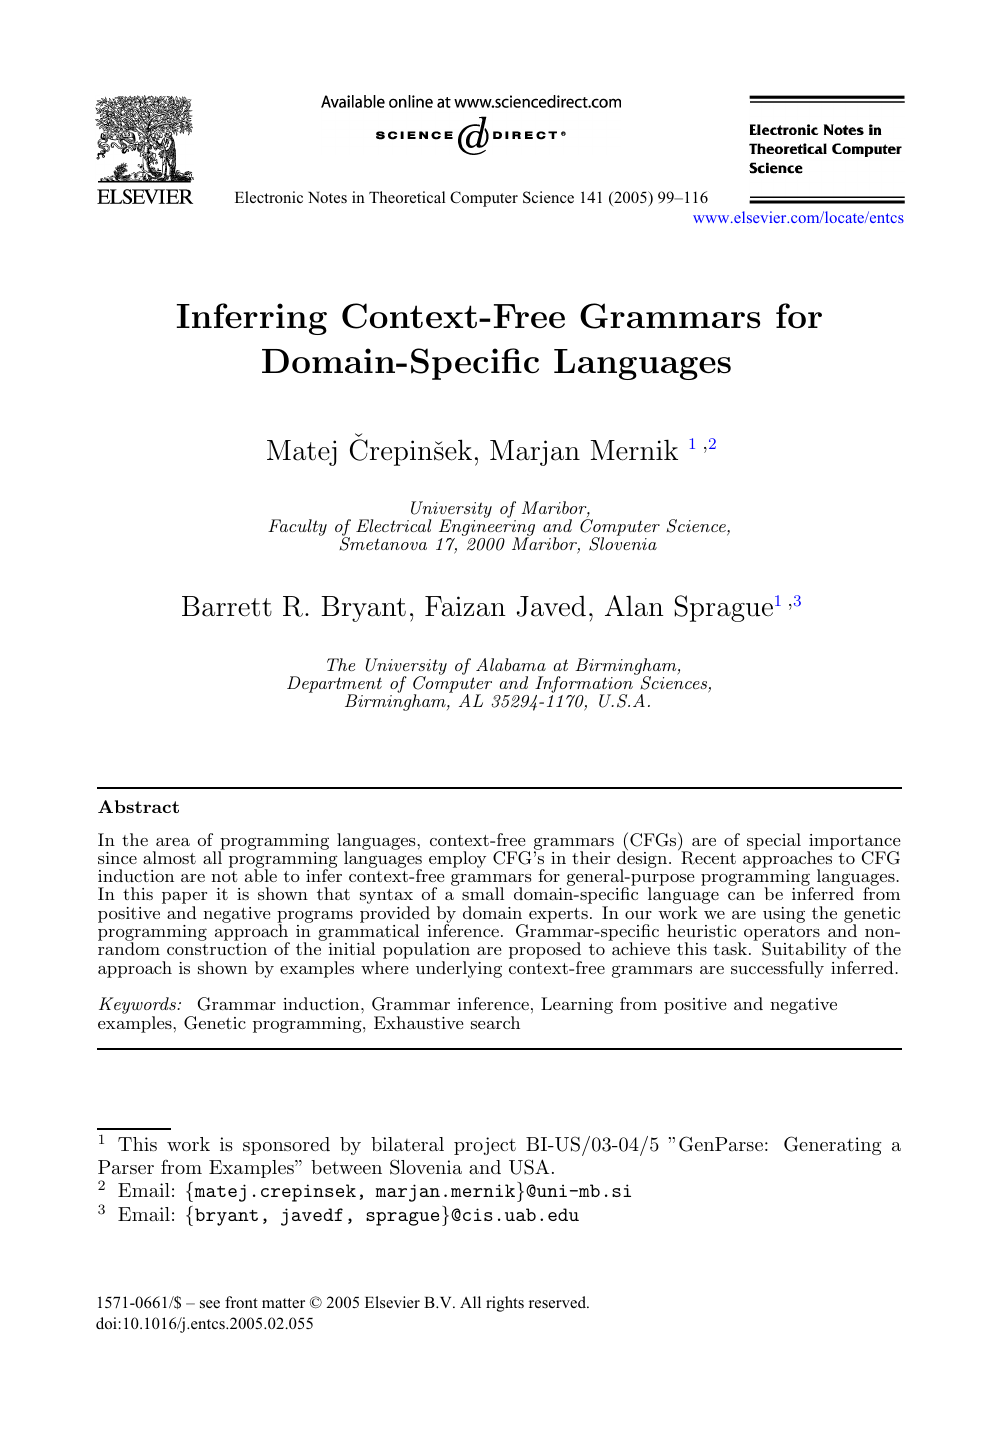 Inferring Context Free Grammars For Domain Specific